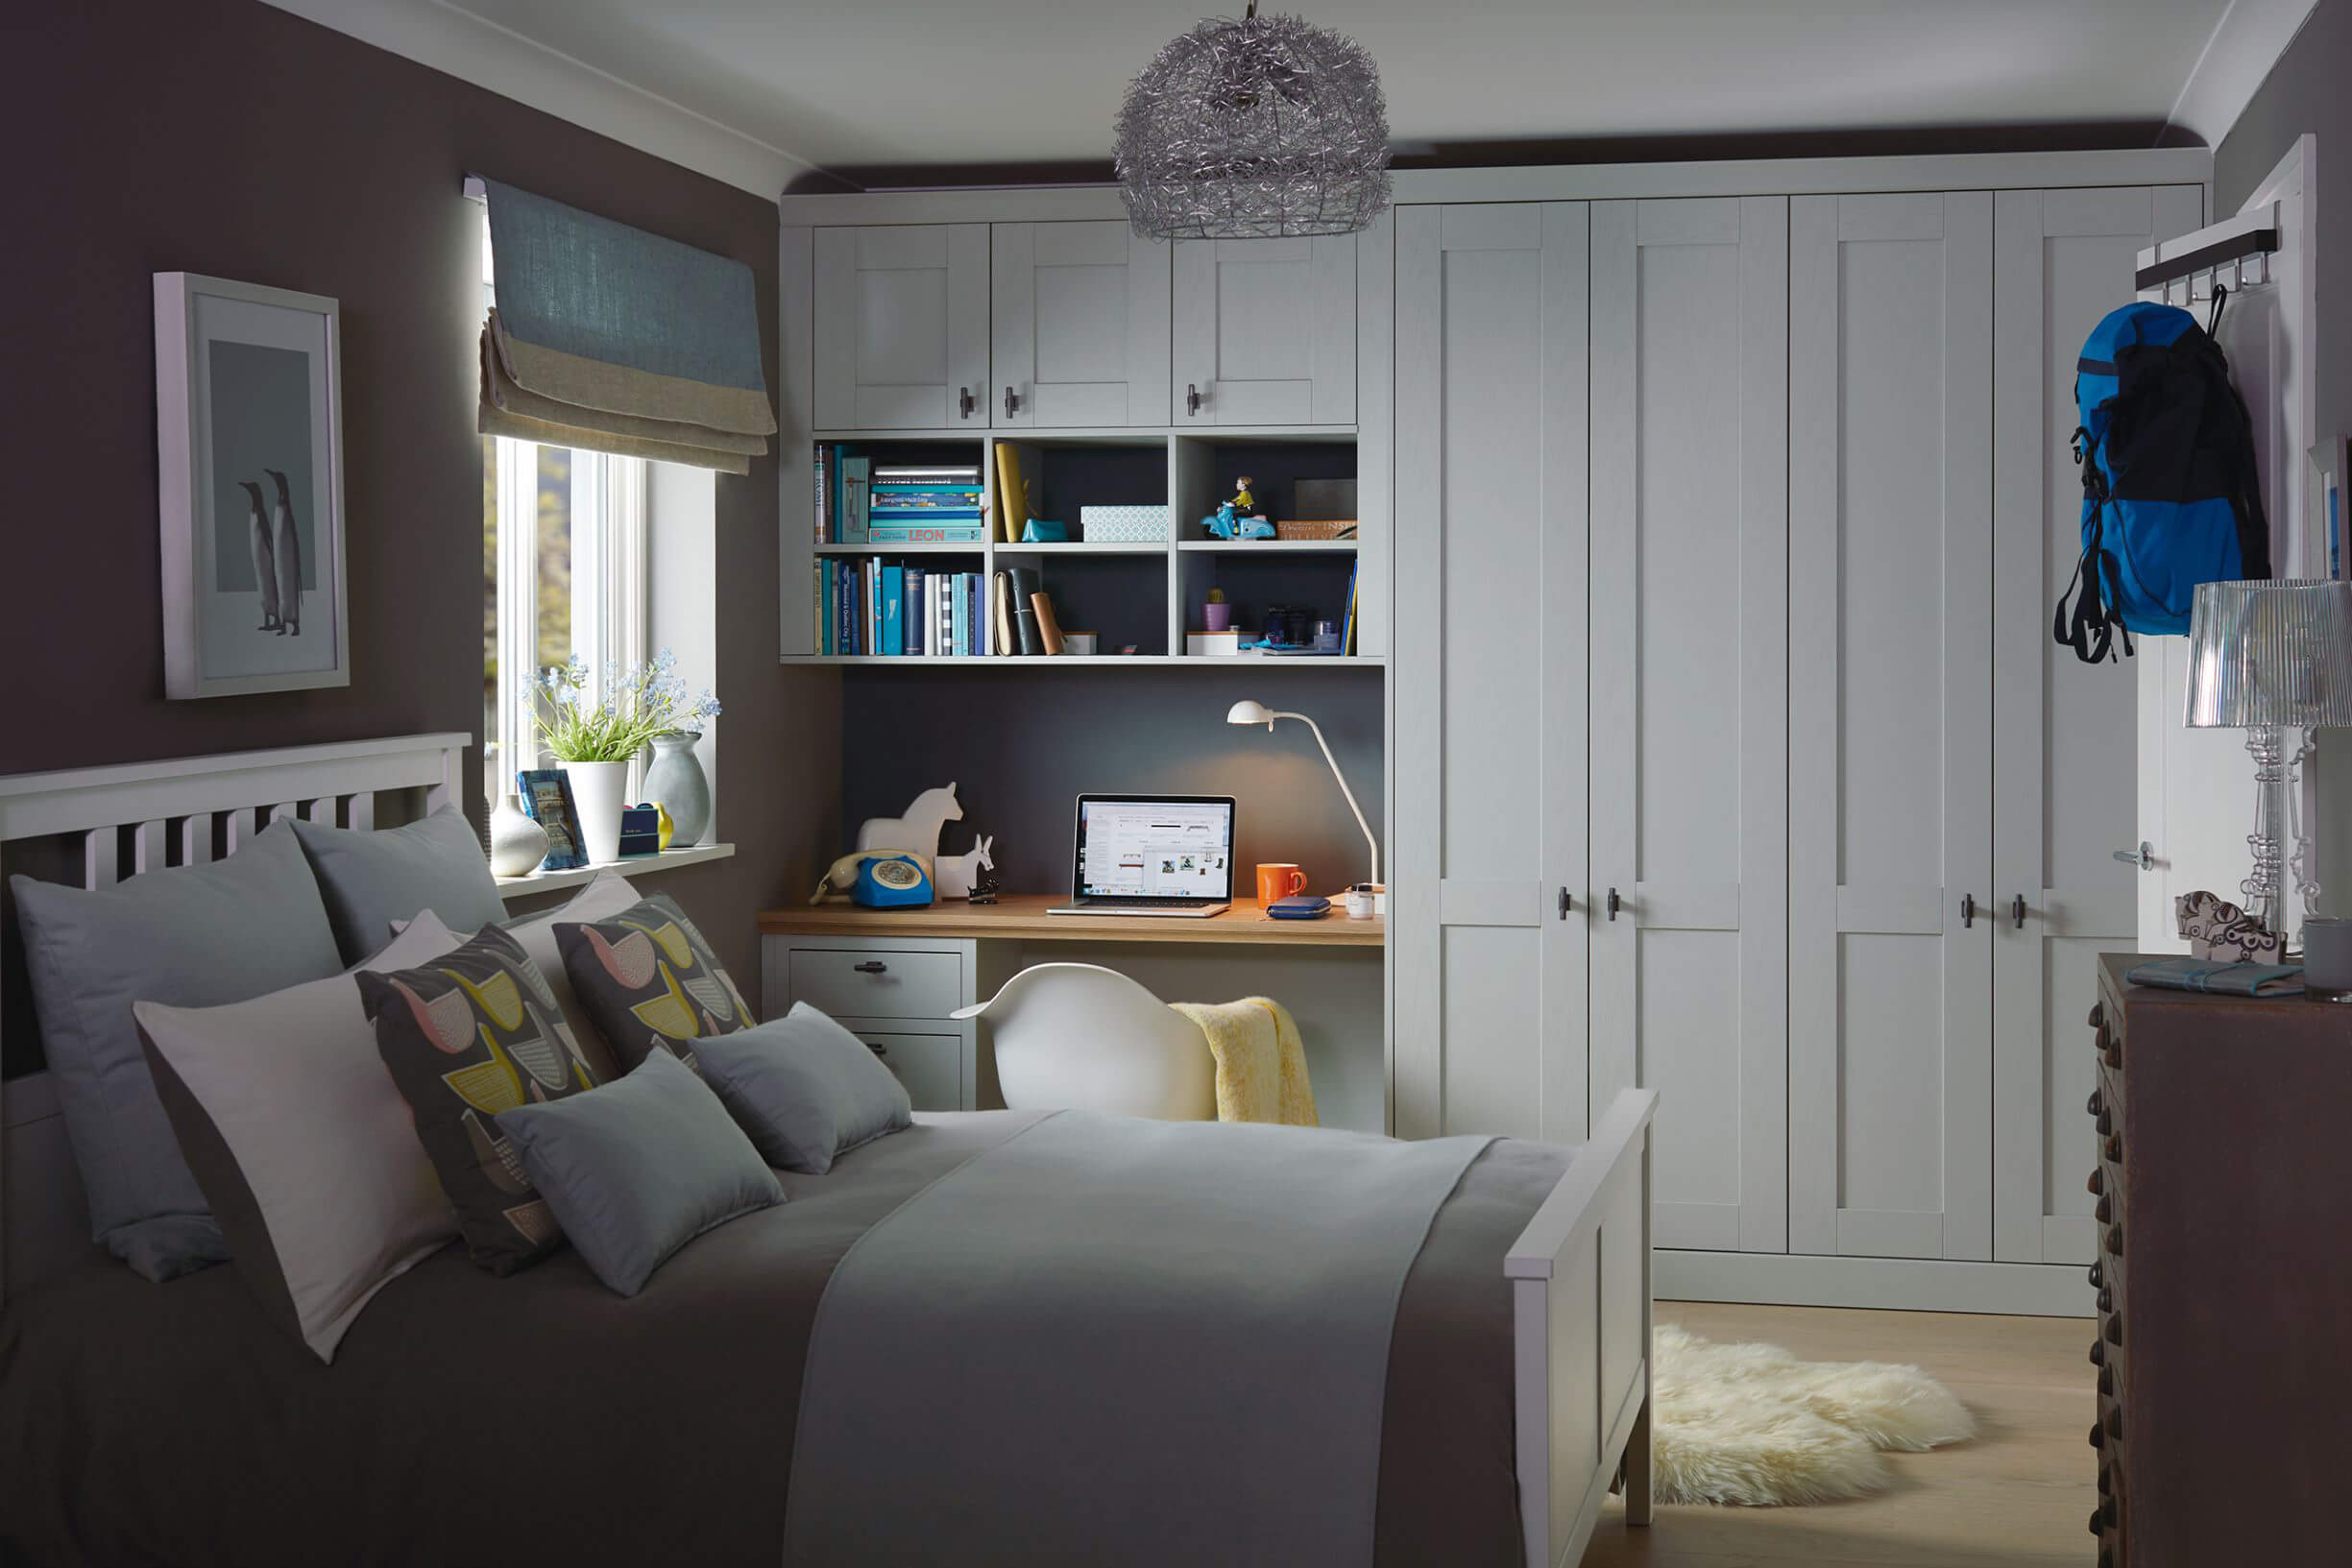 Kindred-Bedrooms-Origin-Gallery8